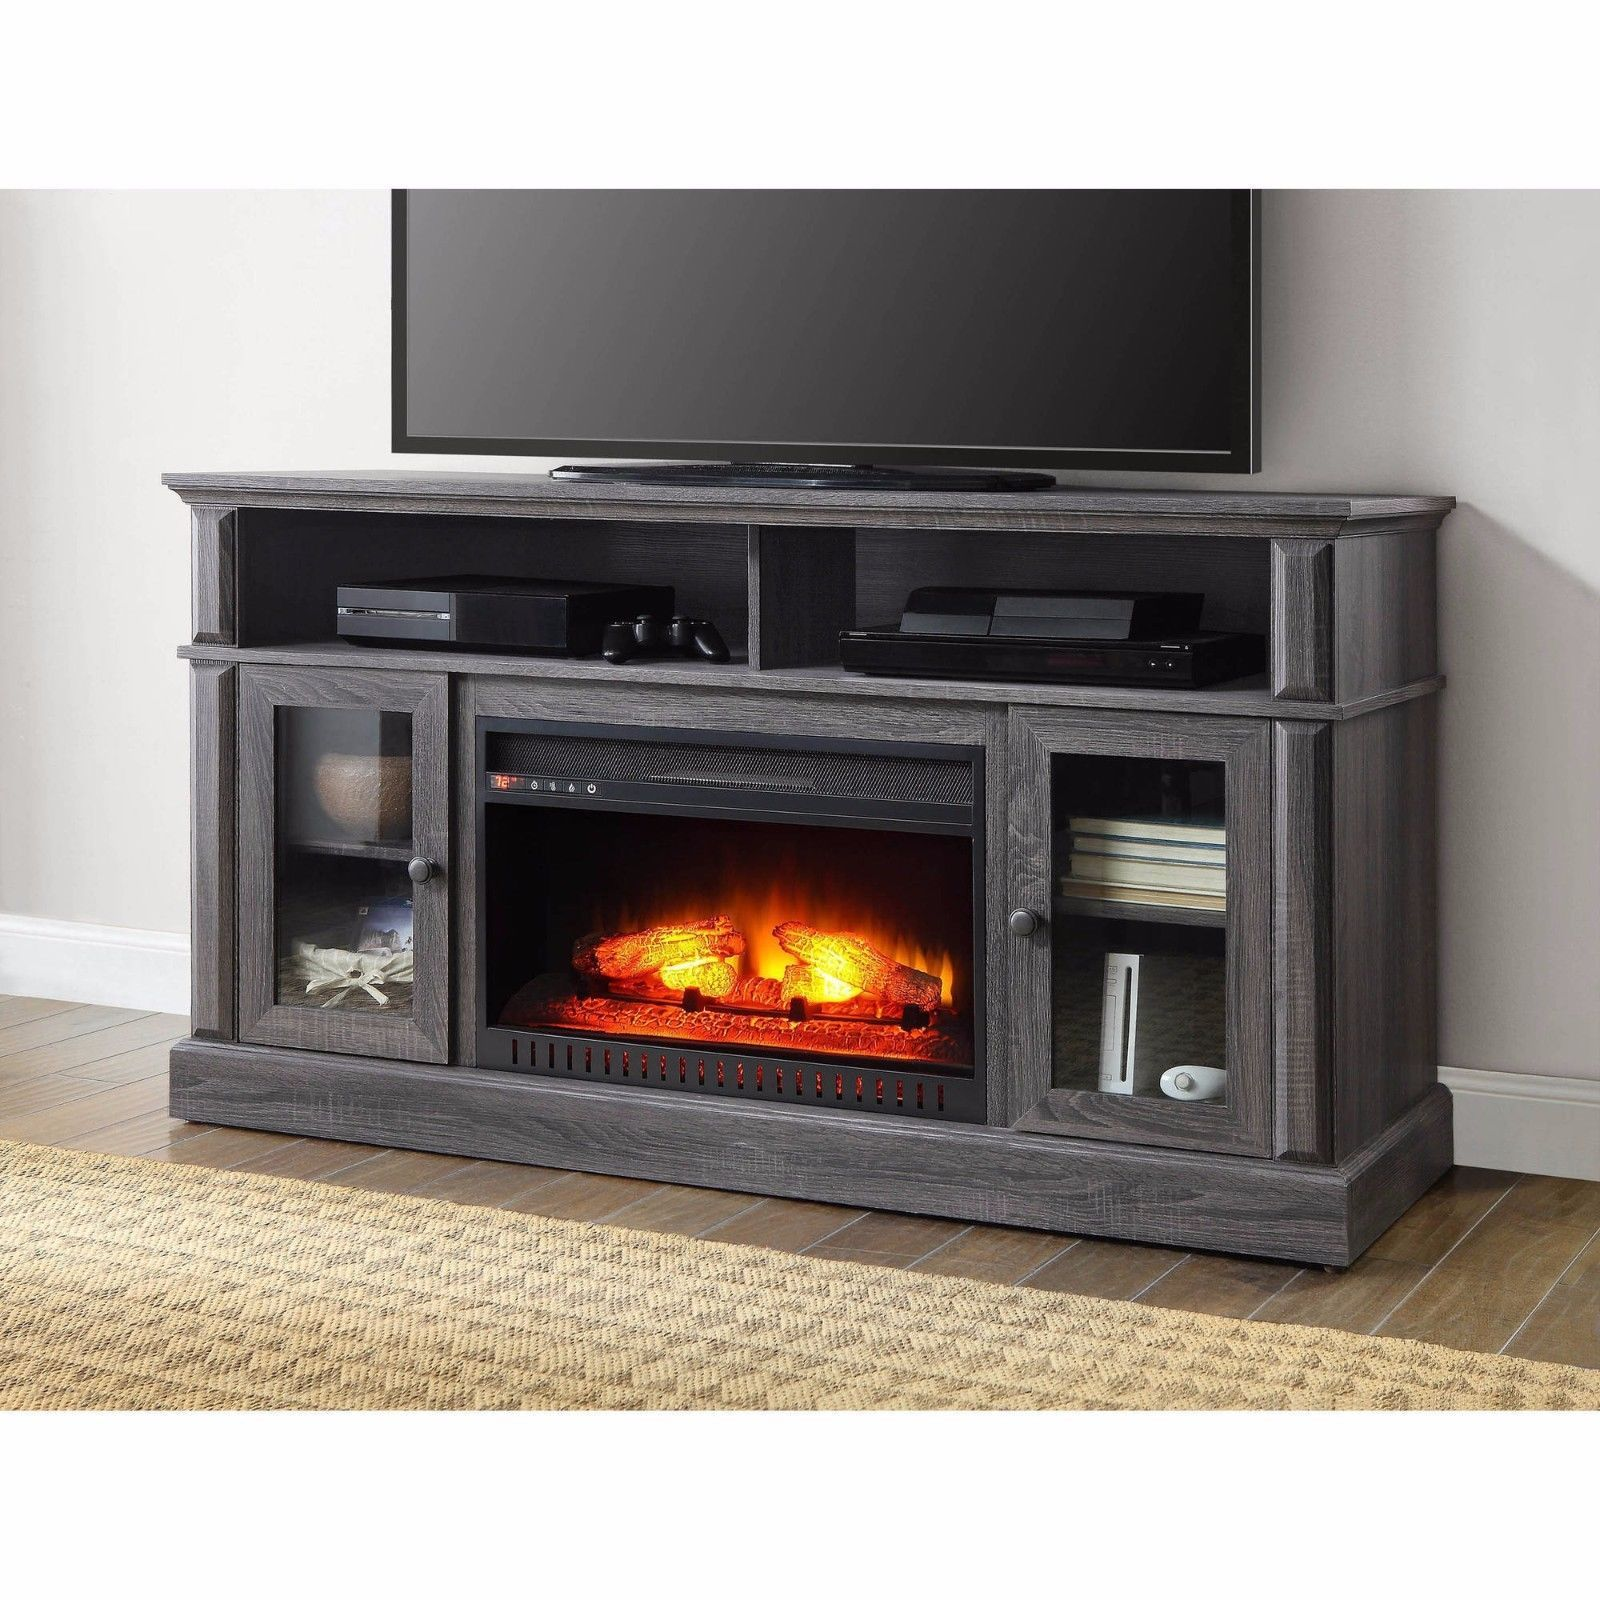 Electric Fireplace Heater Gray Media Cabinet 70? TV Stand Entertainment Center Reviews – Best Electric Fireplace Reviews